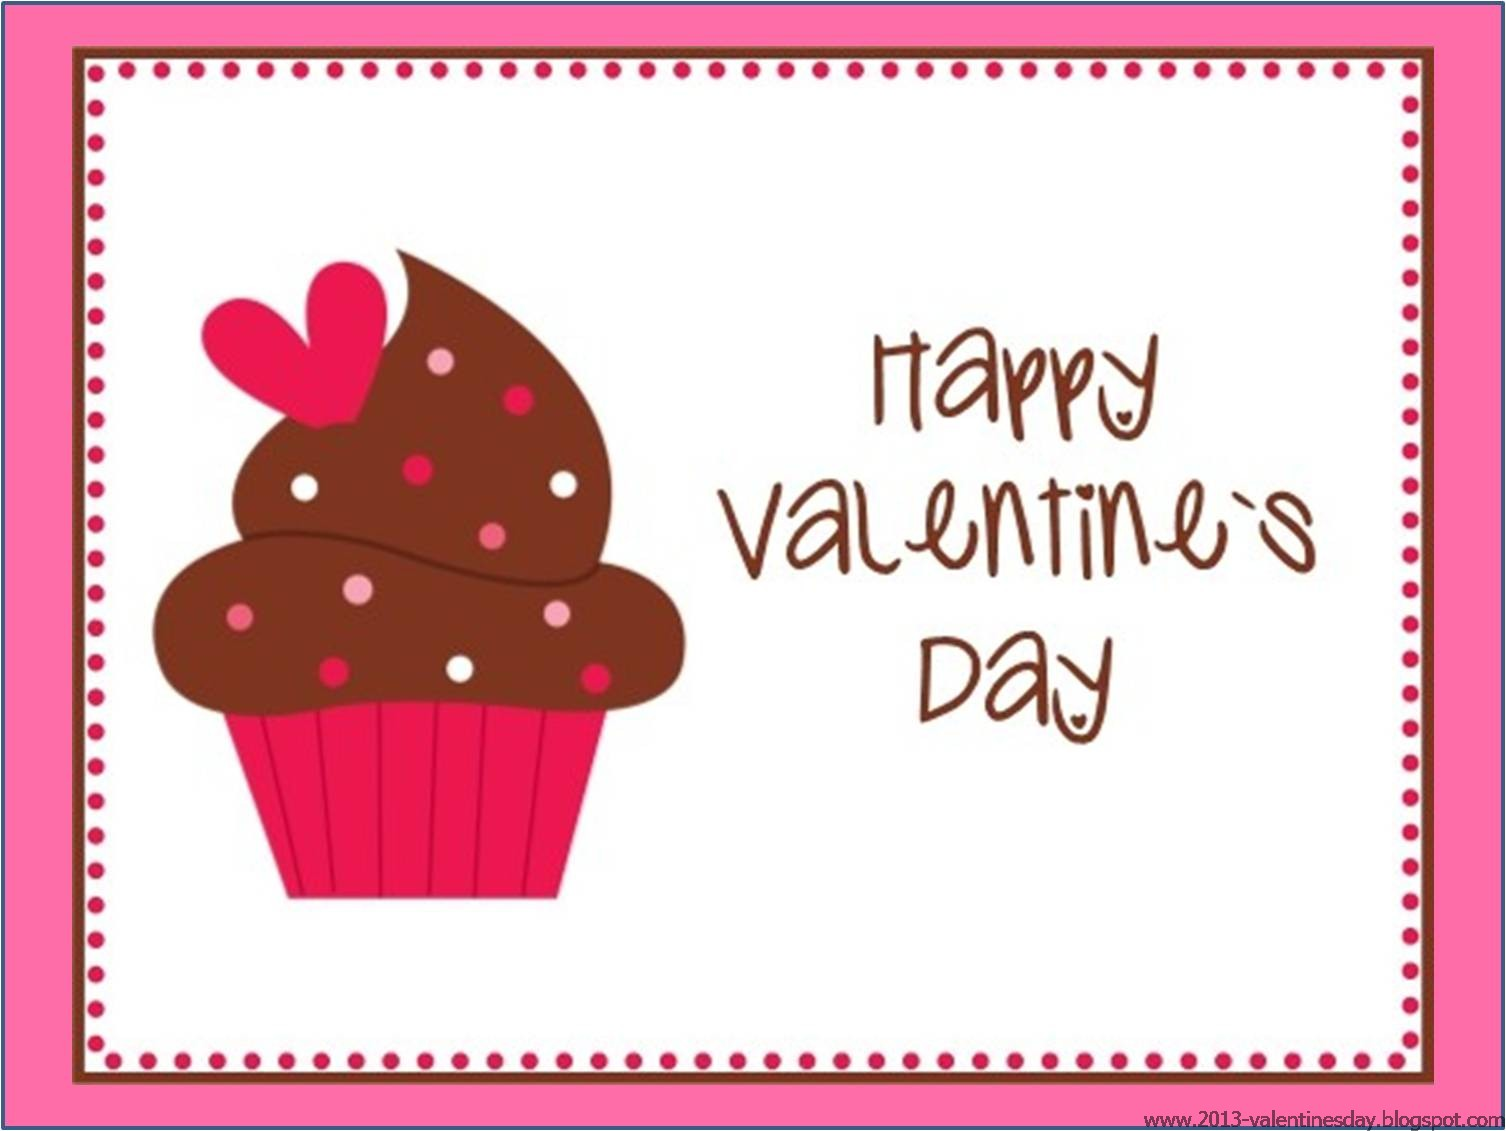 Rodeo Cowboy Valentines Day Png - Rodeo cowboy valentines day clipart - Clip Art Library